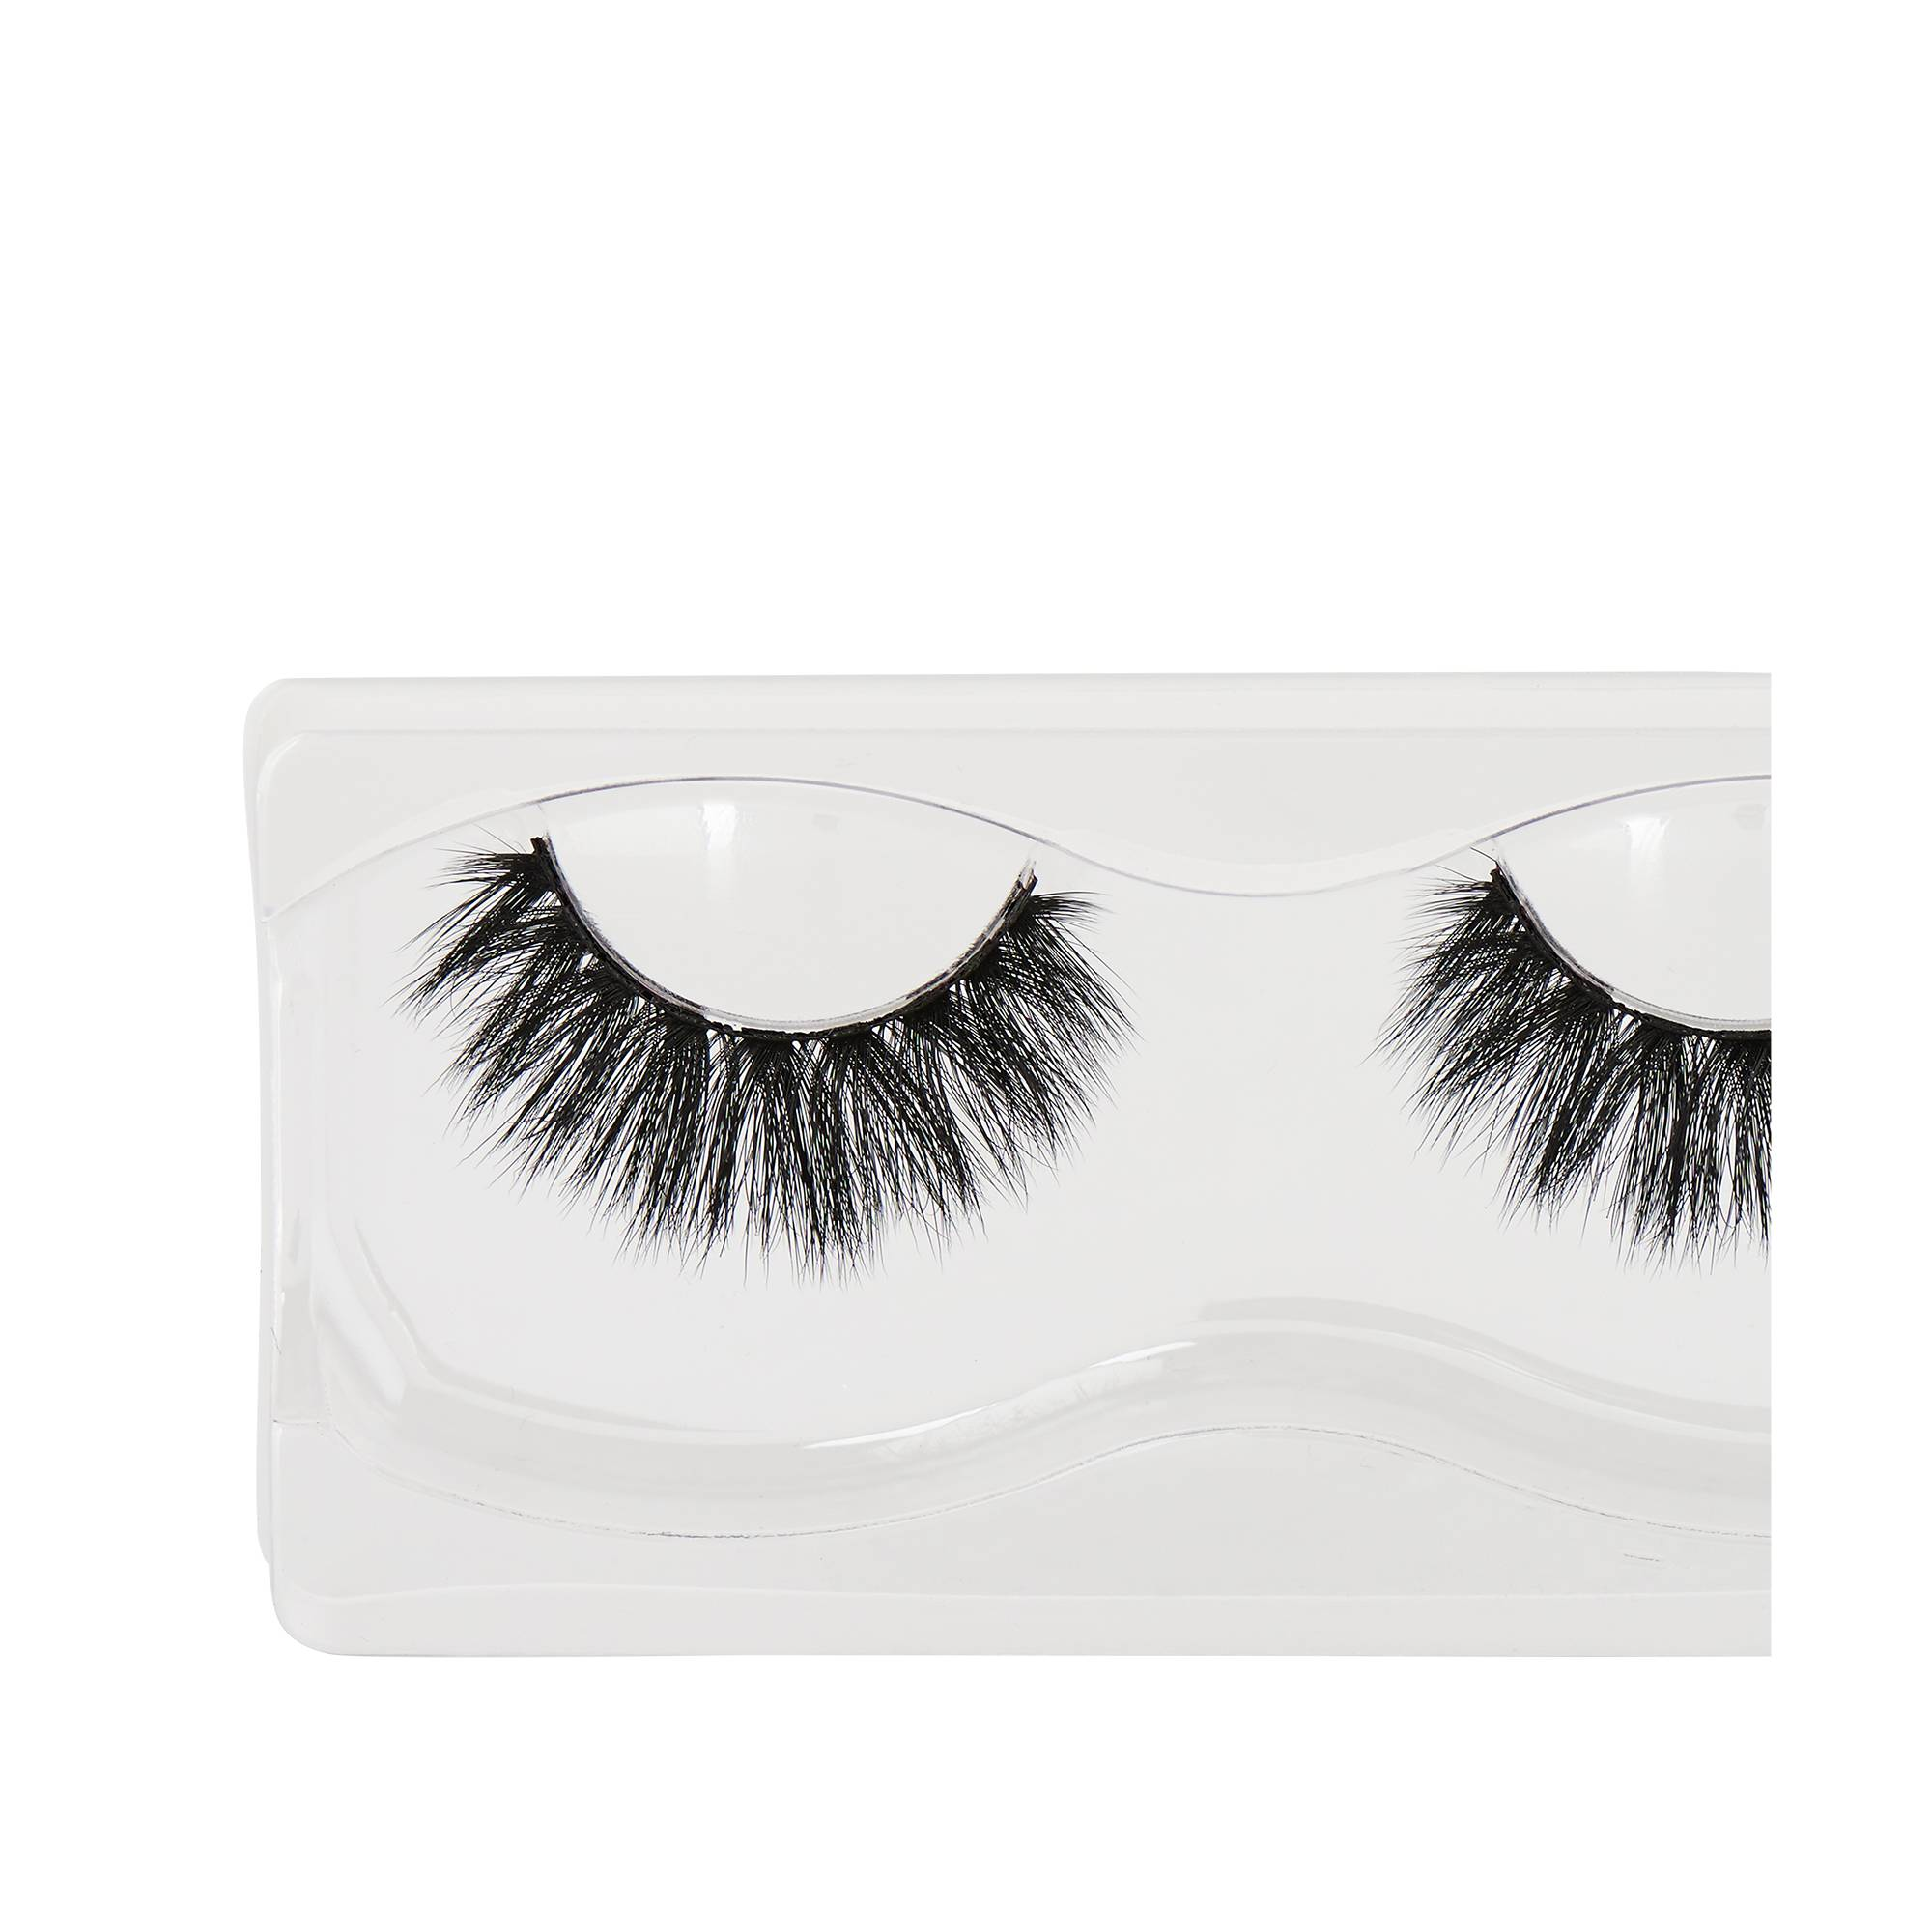 Lilly Lashes Mykonos Faux Mink Lashes